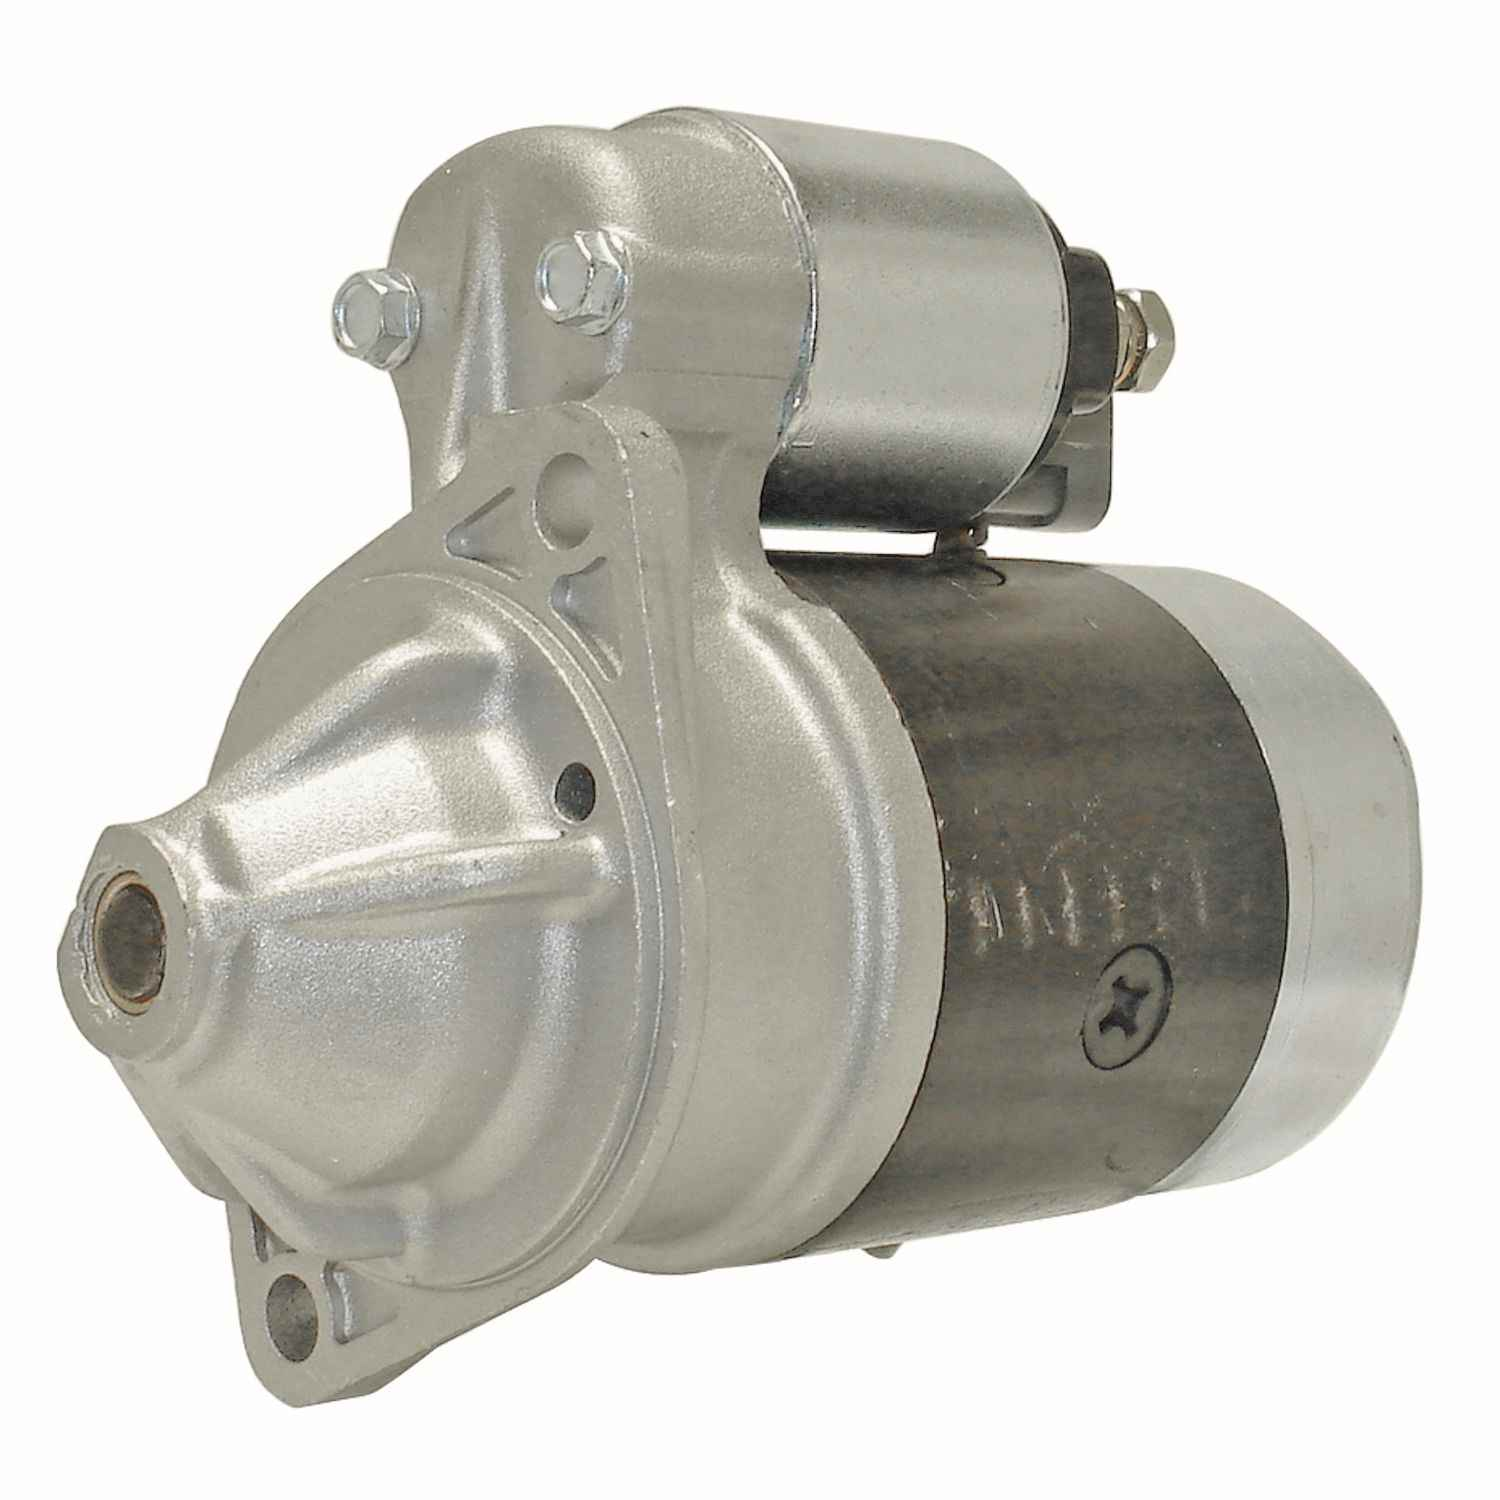 ACDELCO GOLD/PROFESSIONAL - Reman Starter Motor - DCC 336-1486